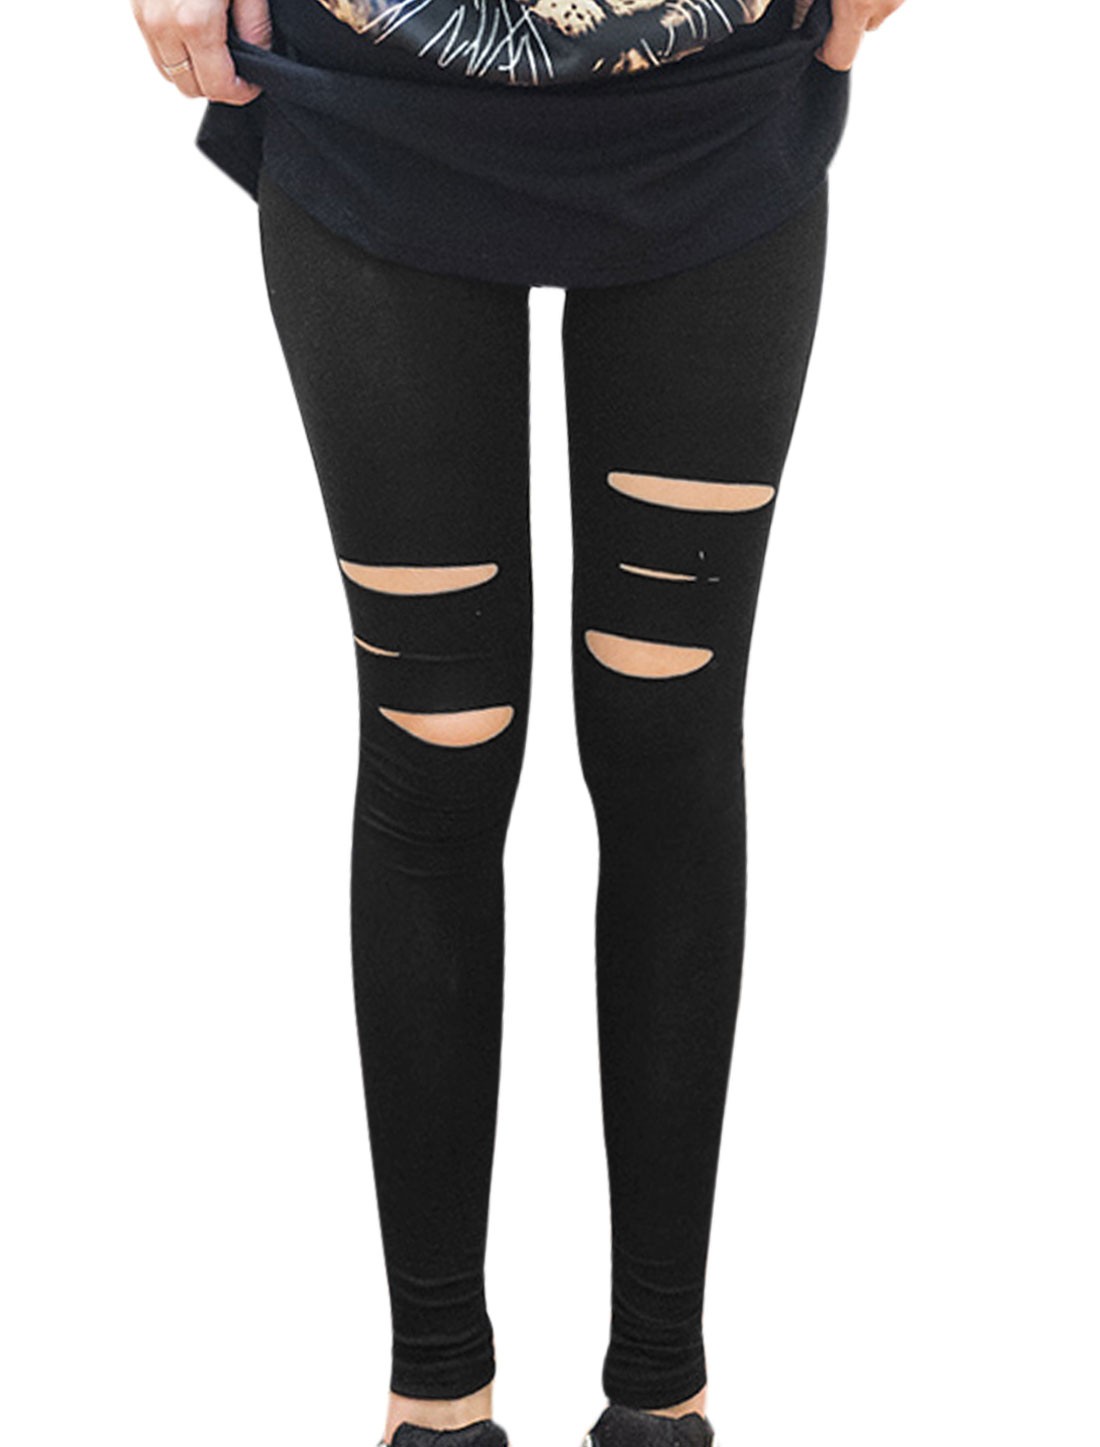 Women Elastic Waist Cut Out Design Stretchy Skinny Leggings Black XS